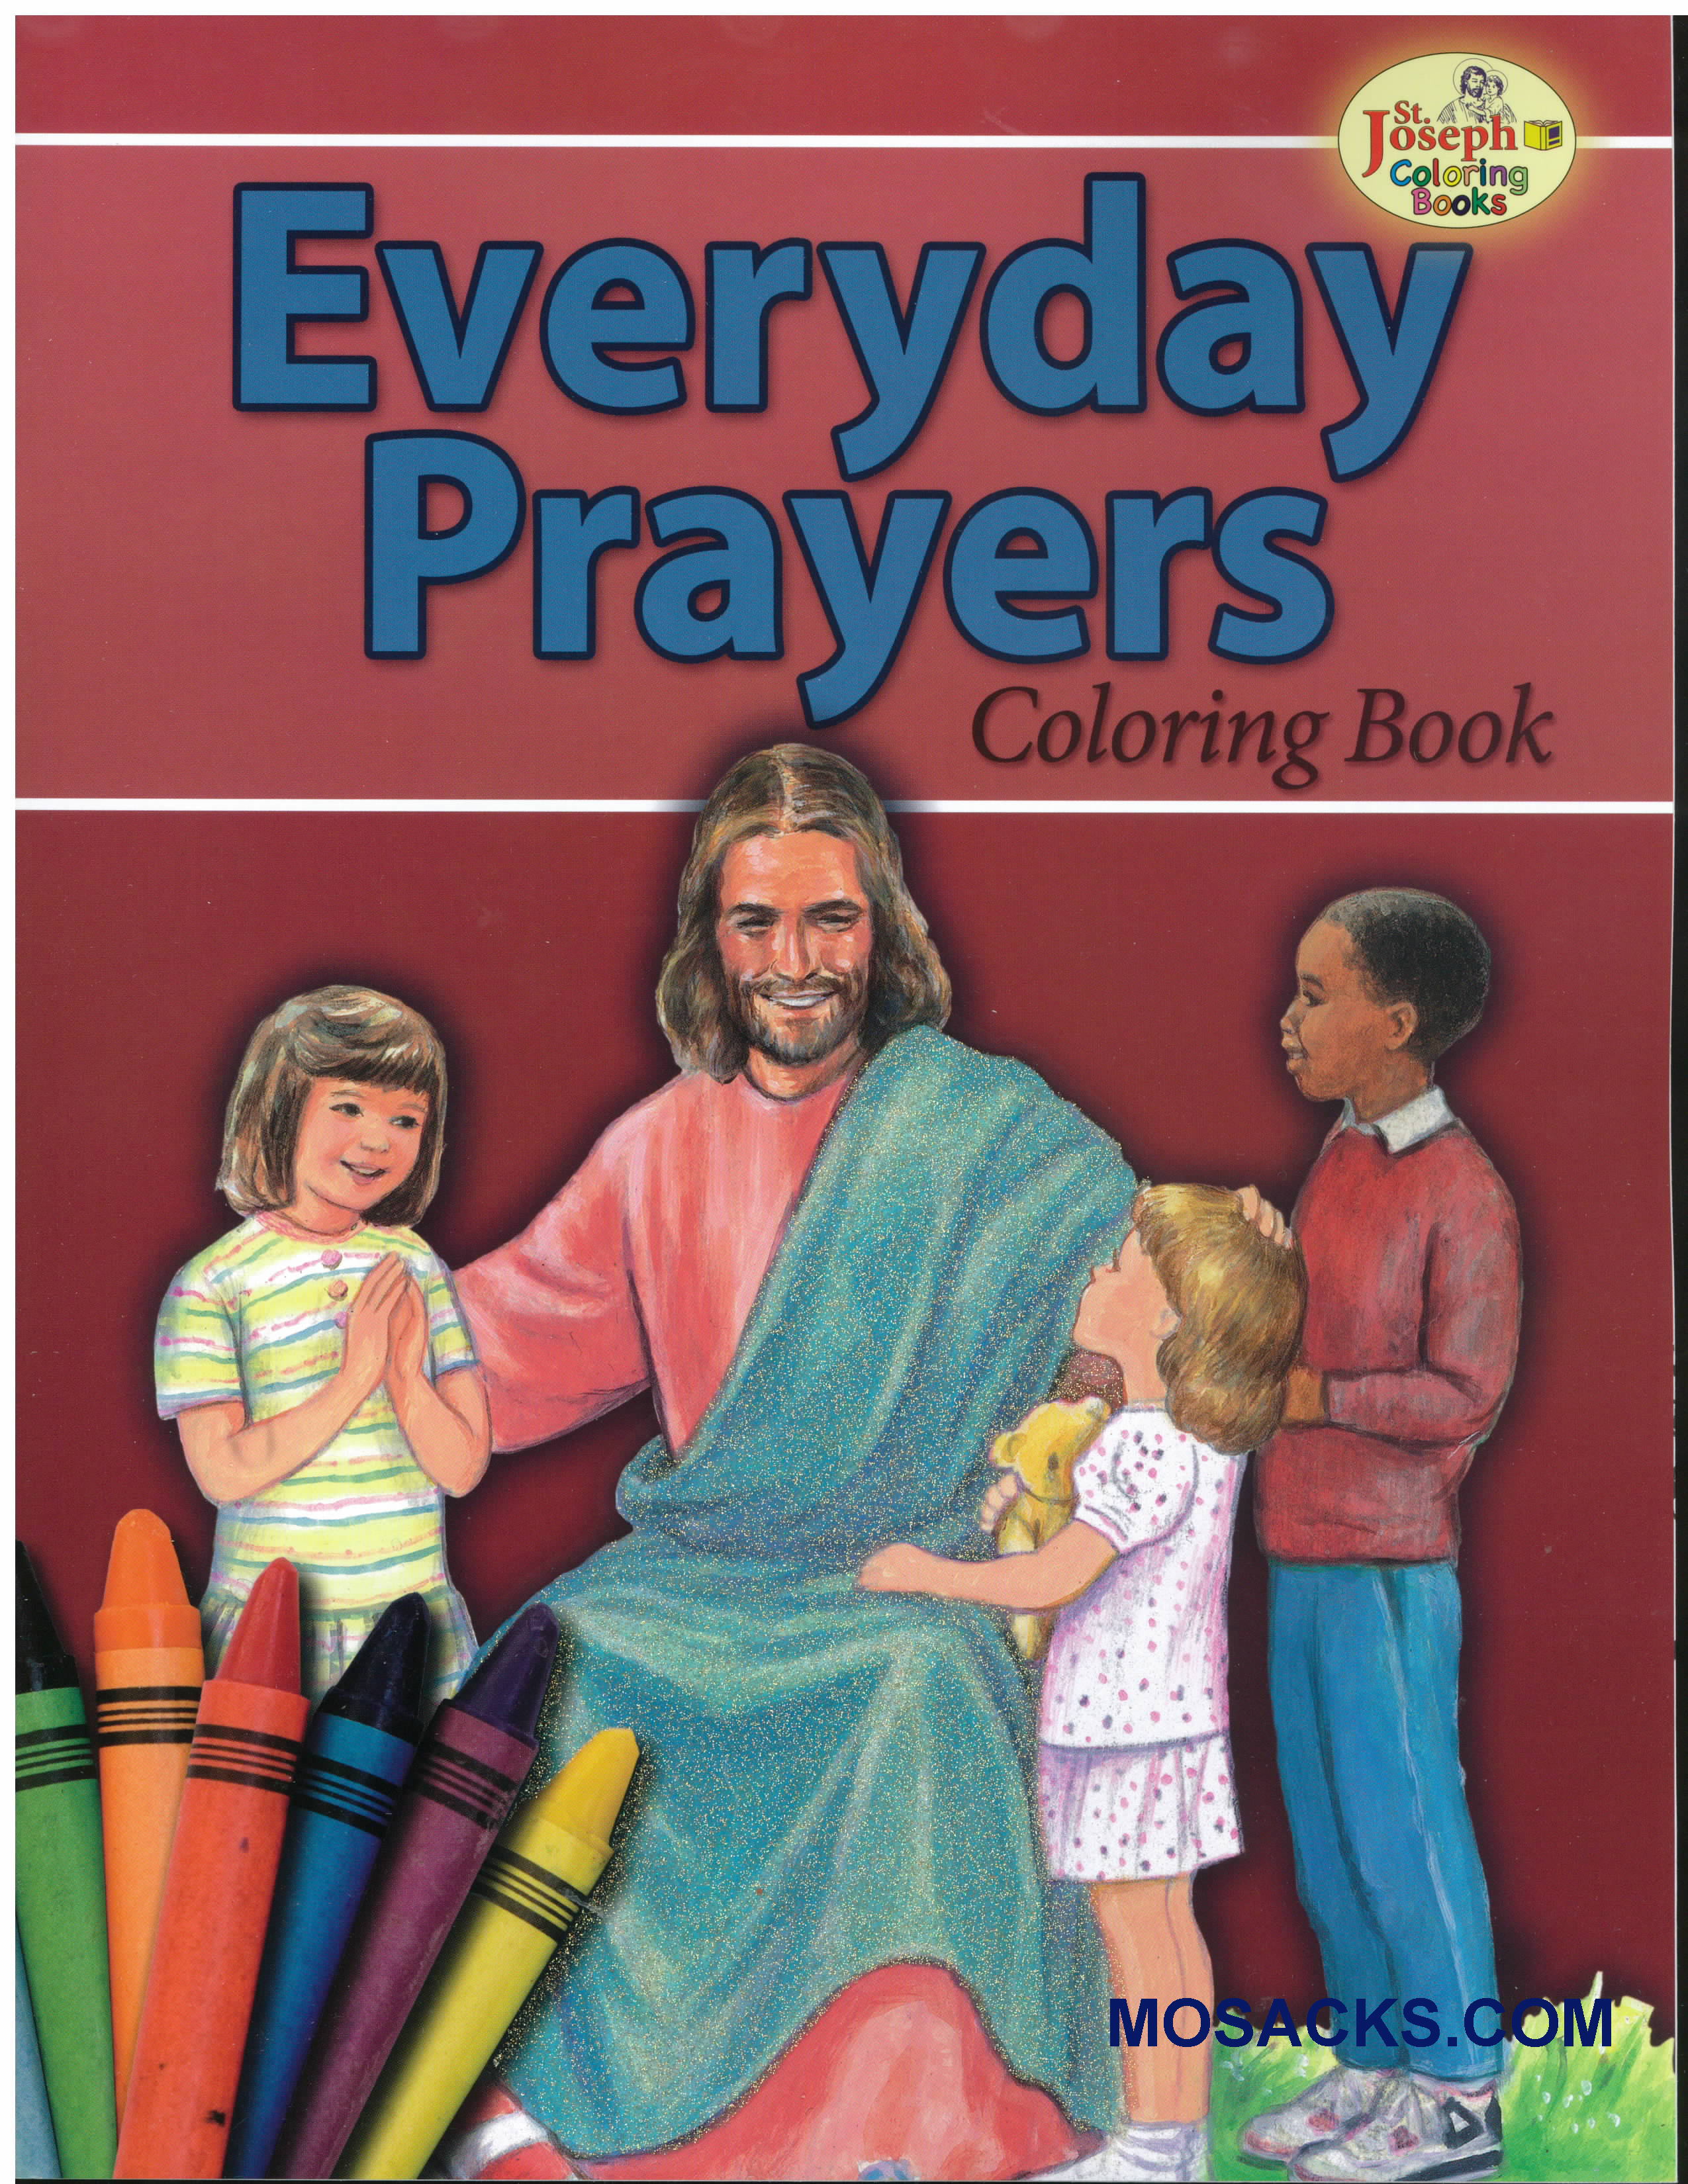 St Joseph Educational Coloring Book Everyday Prayers-978089942691-4